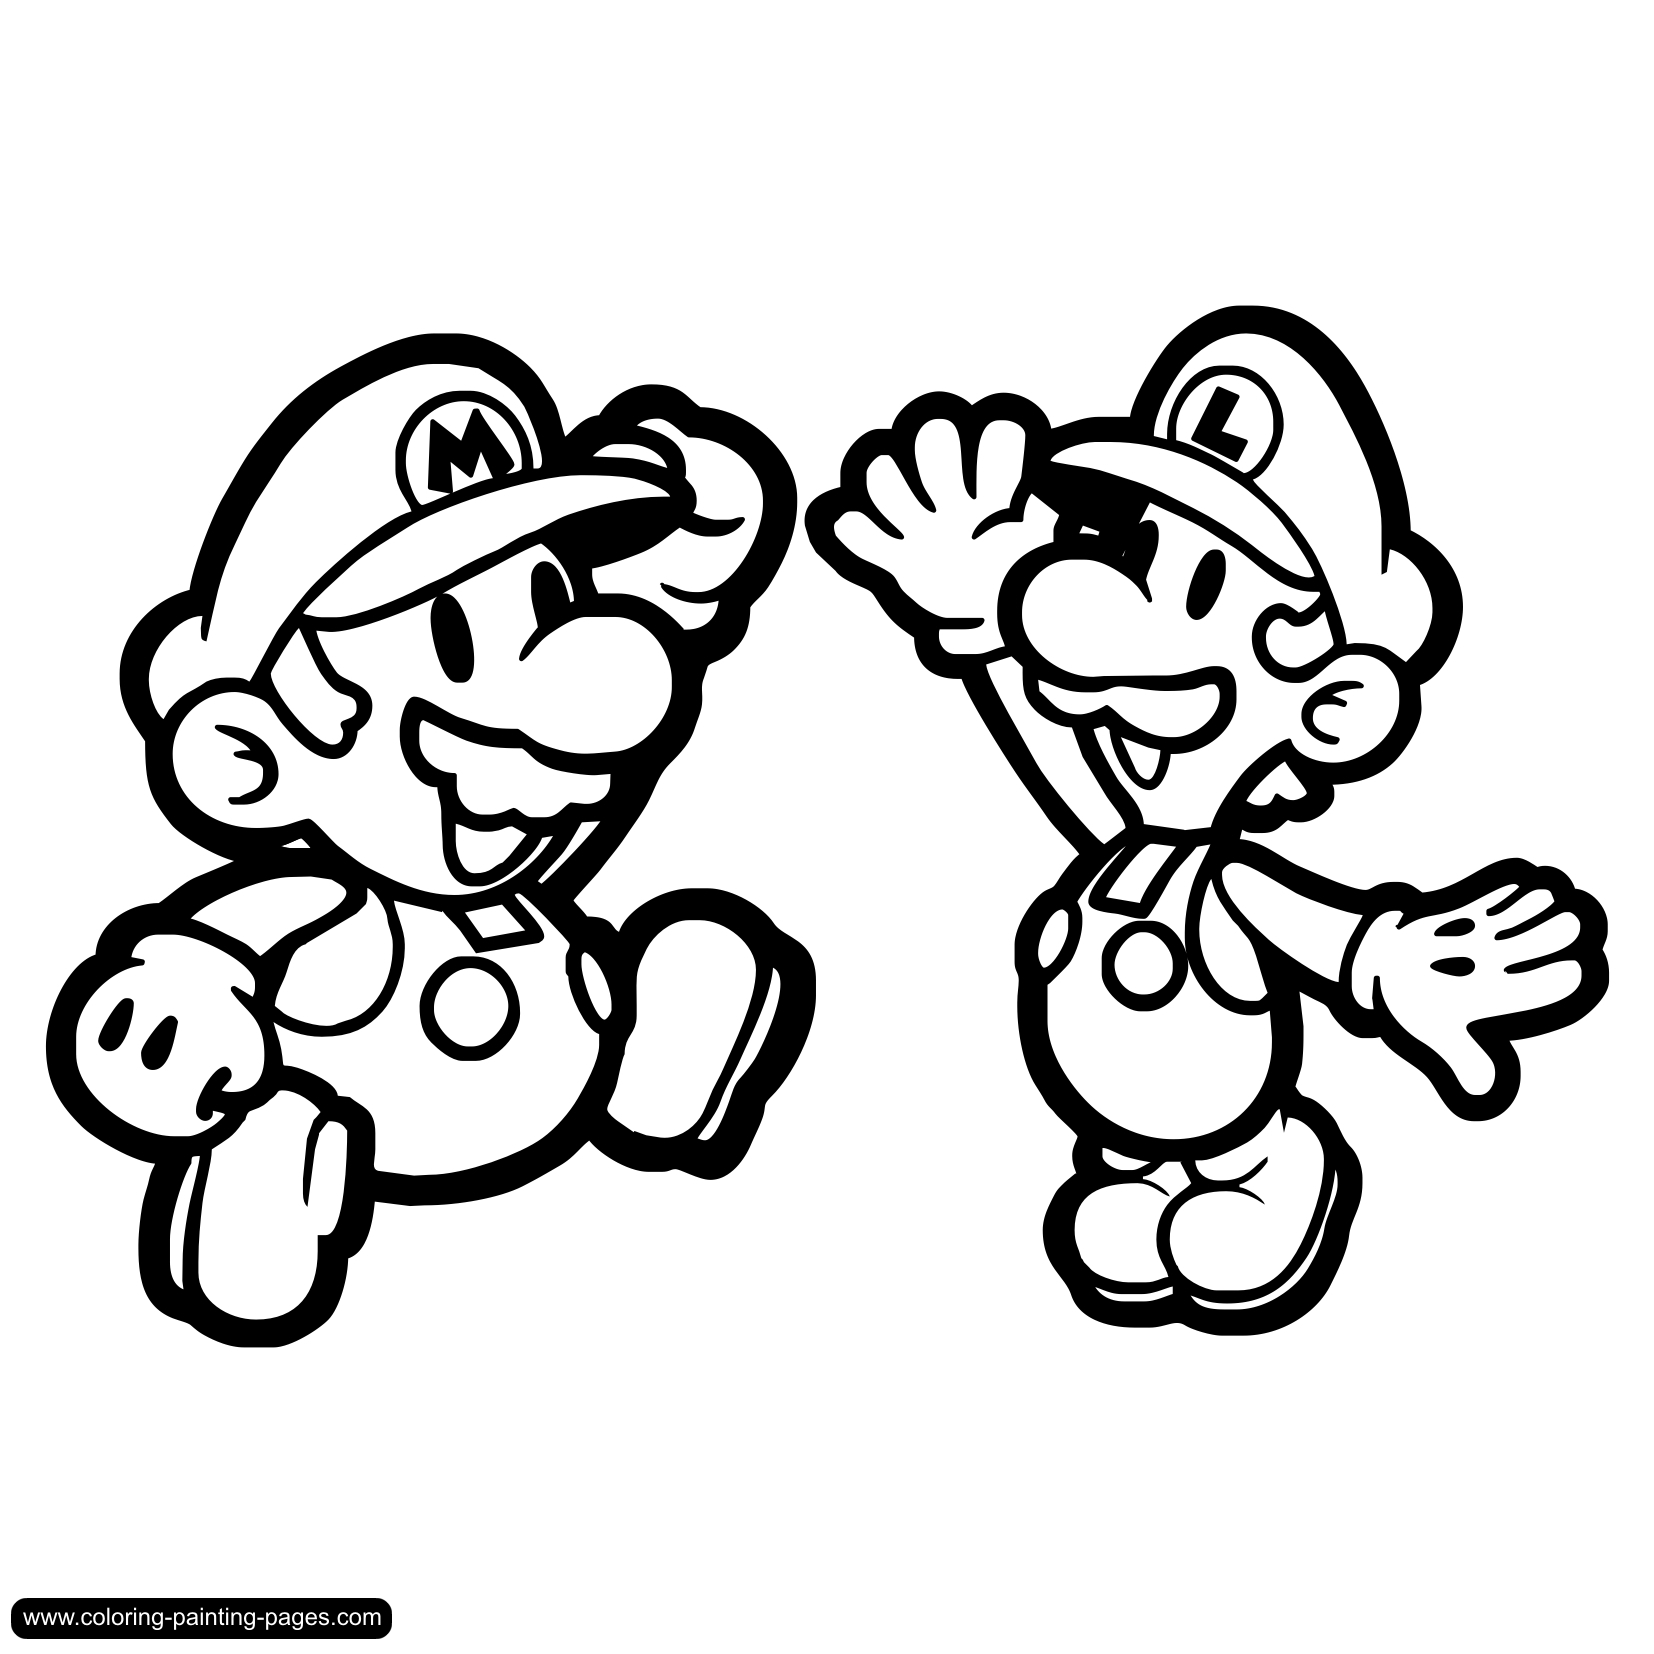 1654x1654 Super Mario Bros Coloring Page Free Download For Download